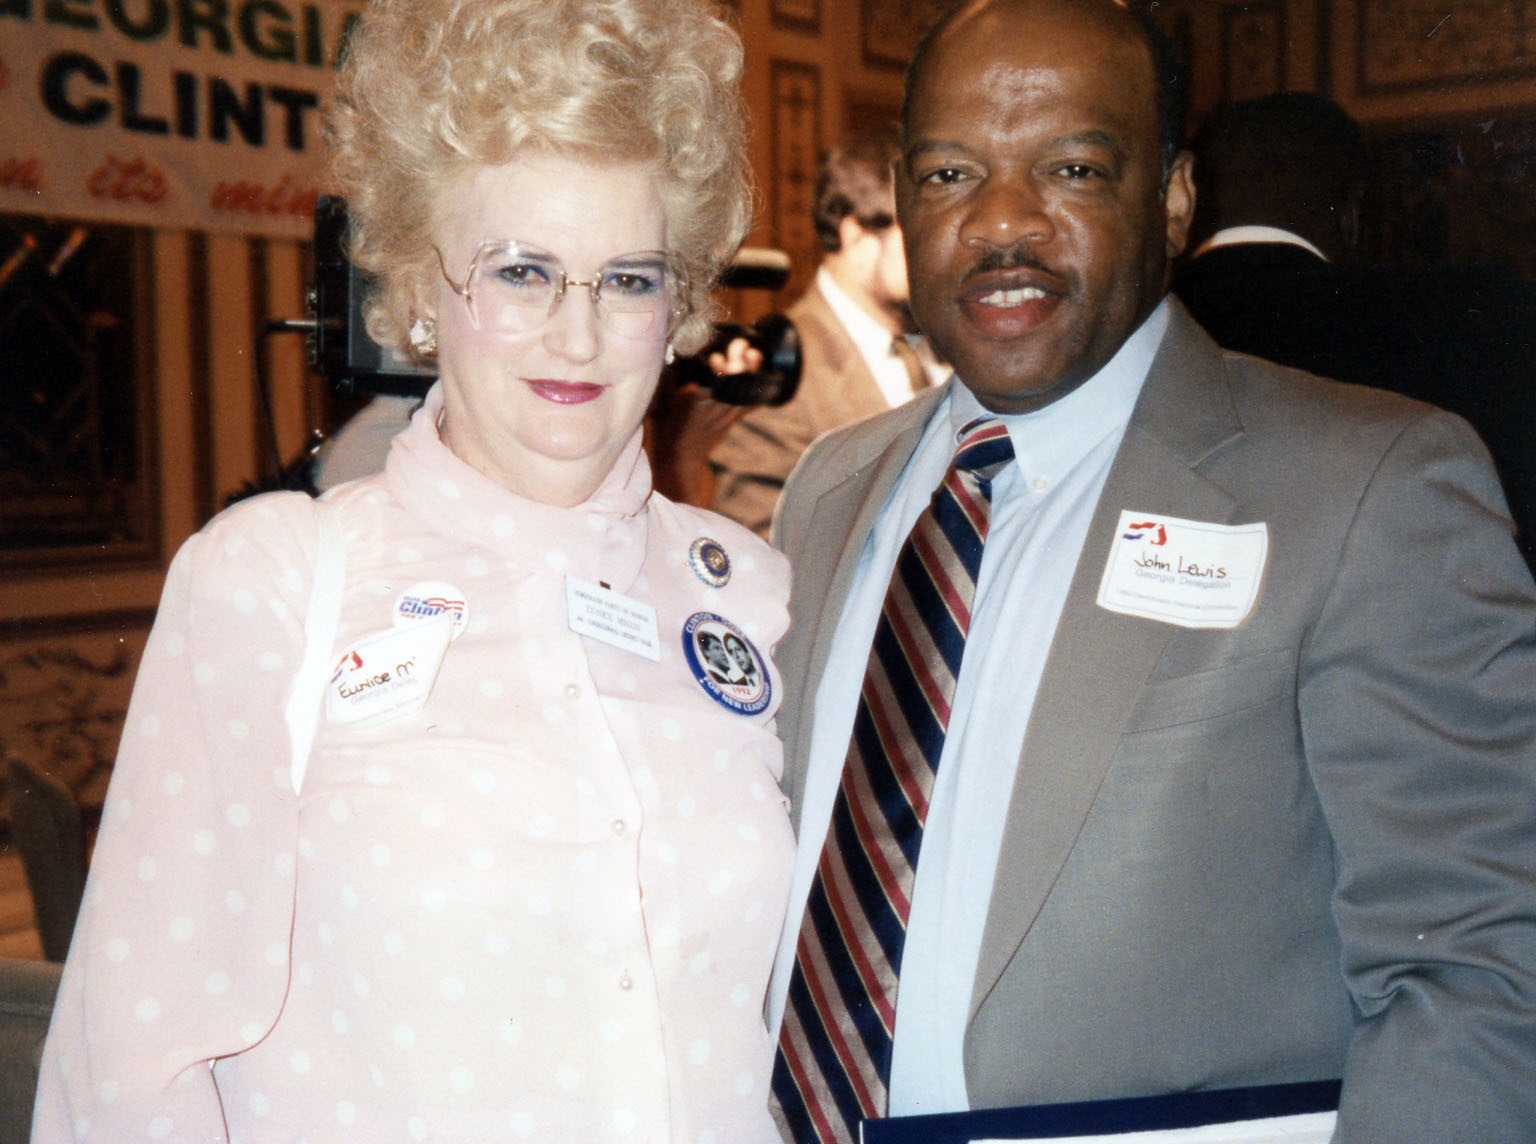 Mixon with John Lewis in 1992